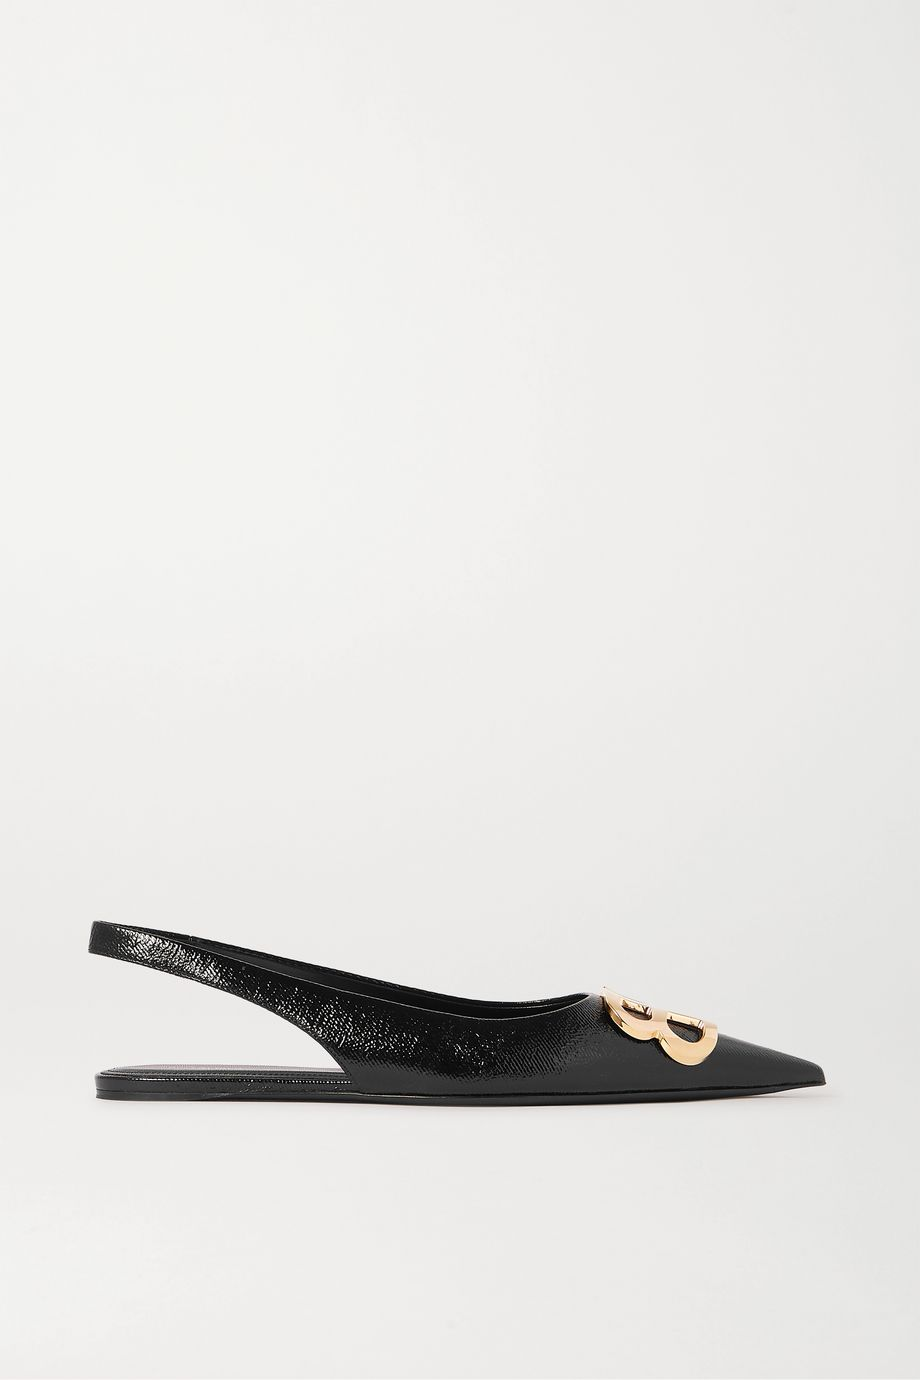 Balenciaga Knife logo-embellished coated-denim slingback point-toe flats